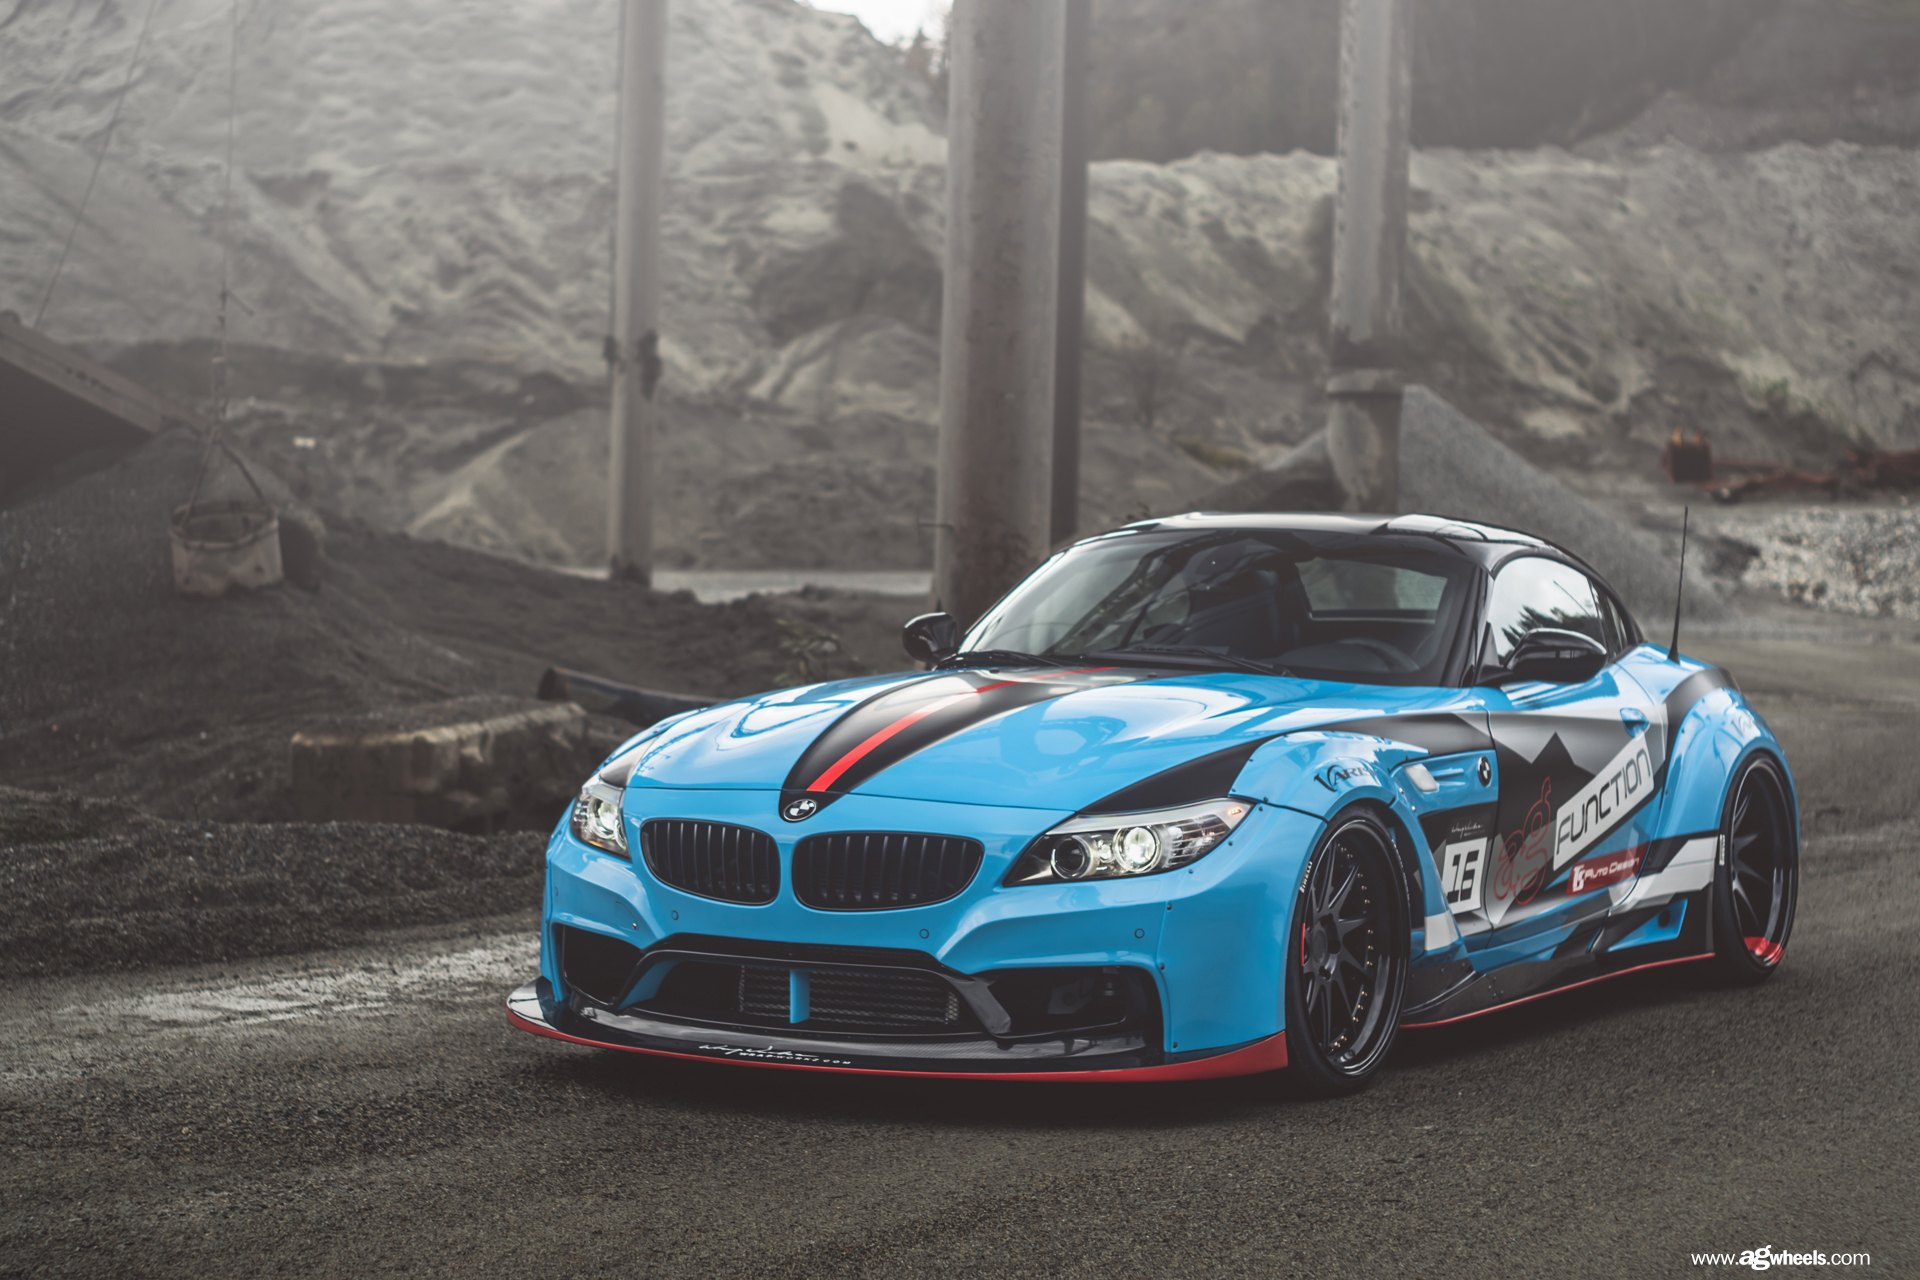 Bmw Z4 With A Wide Body Kit And Racing Livery Carid Com